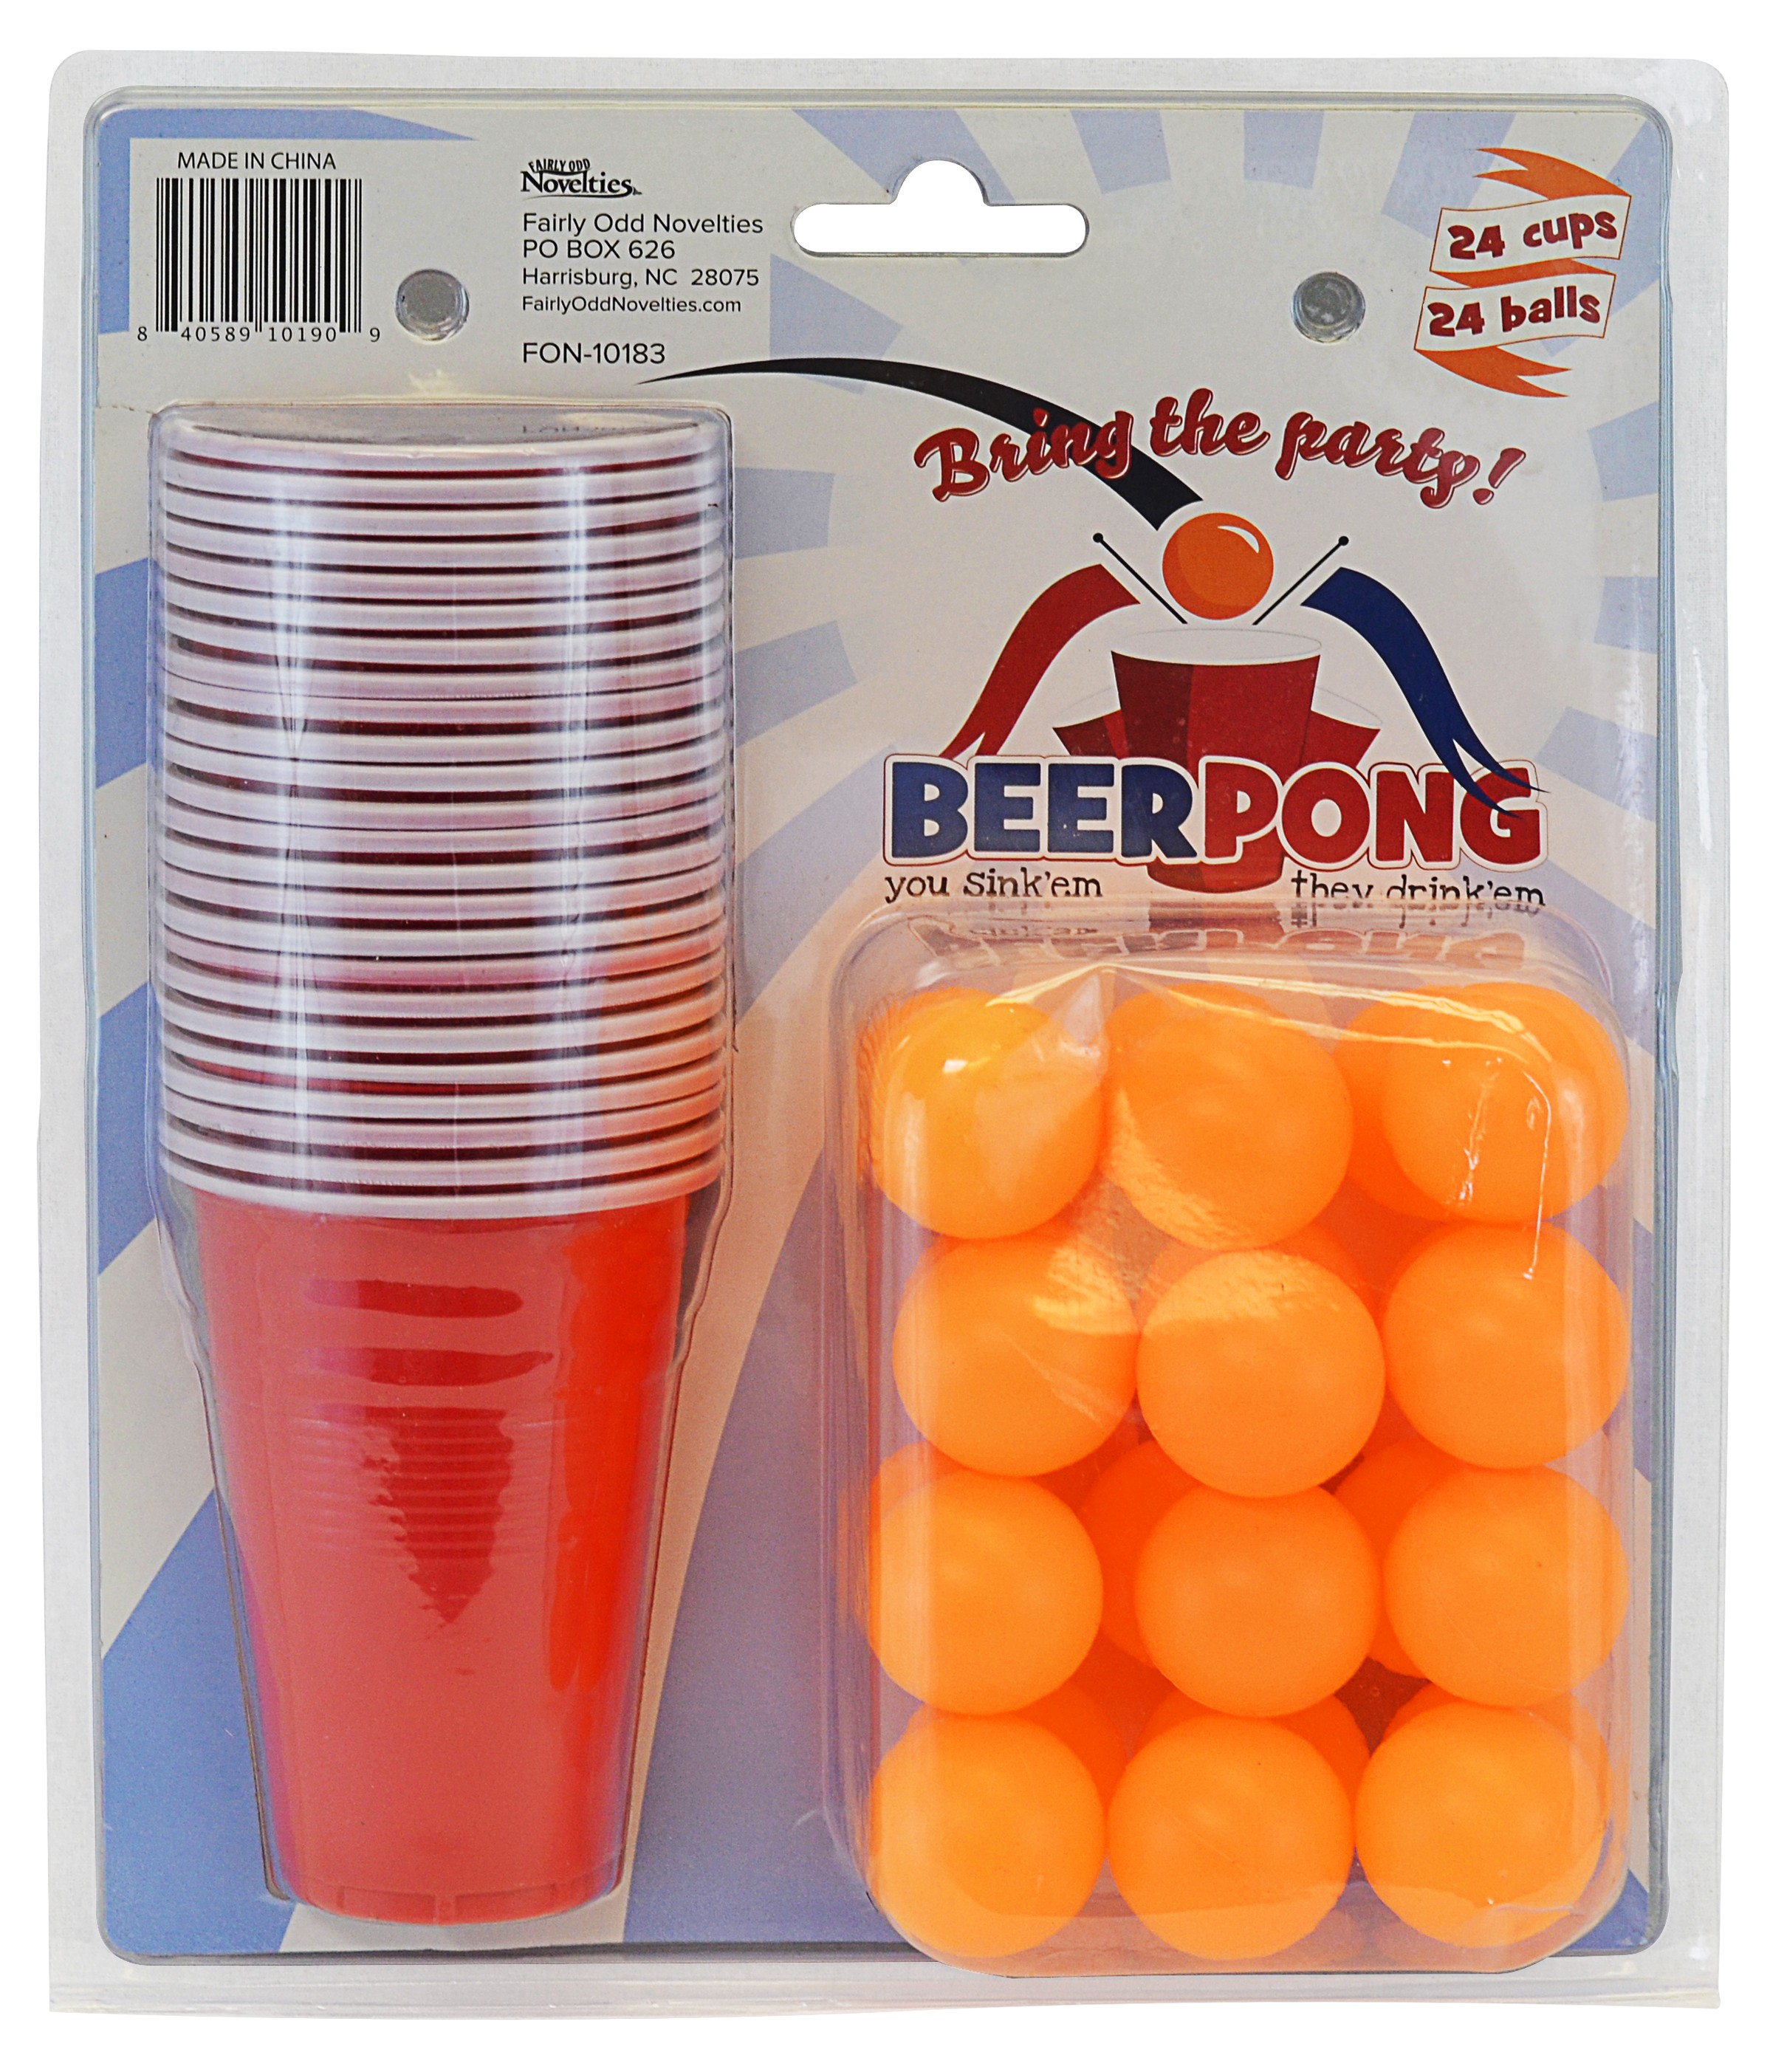 Beer Pong Set, 24 Cups & 24 Balls!